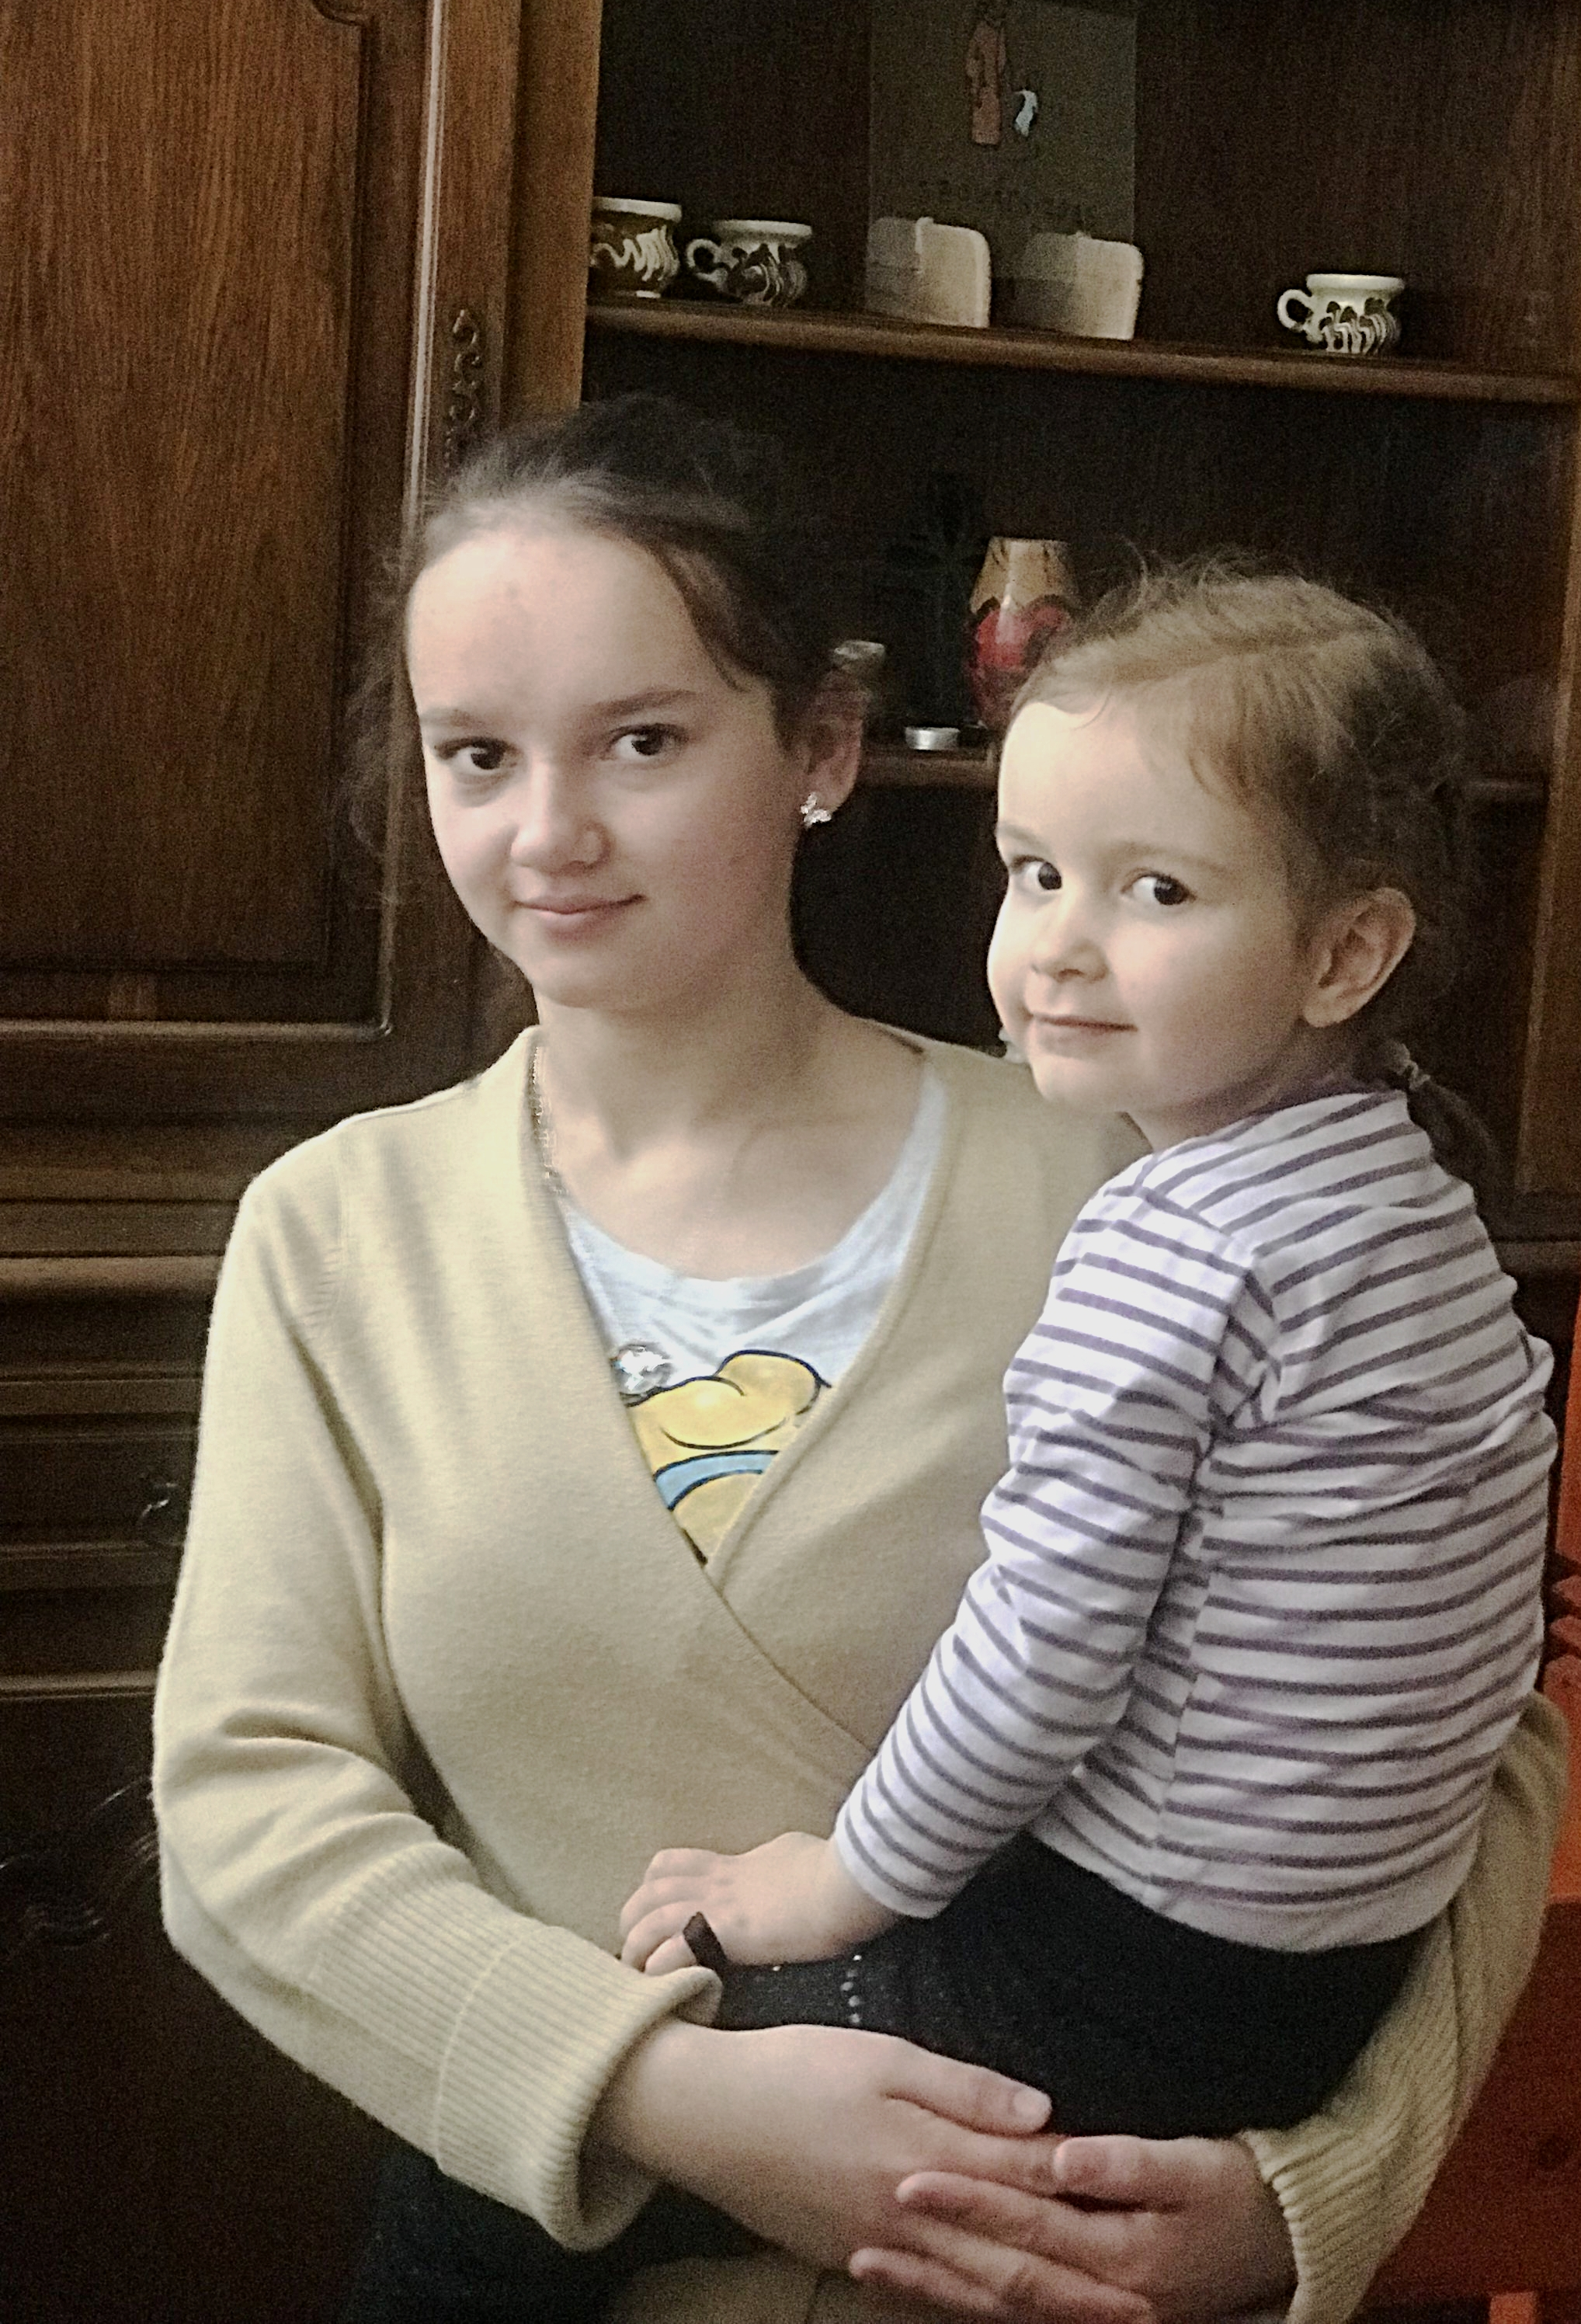 Two of the girls living in foster care